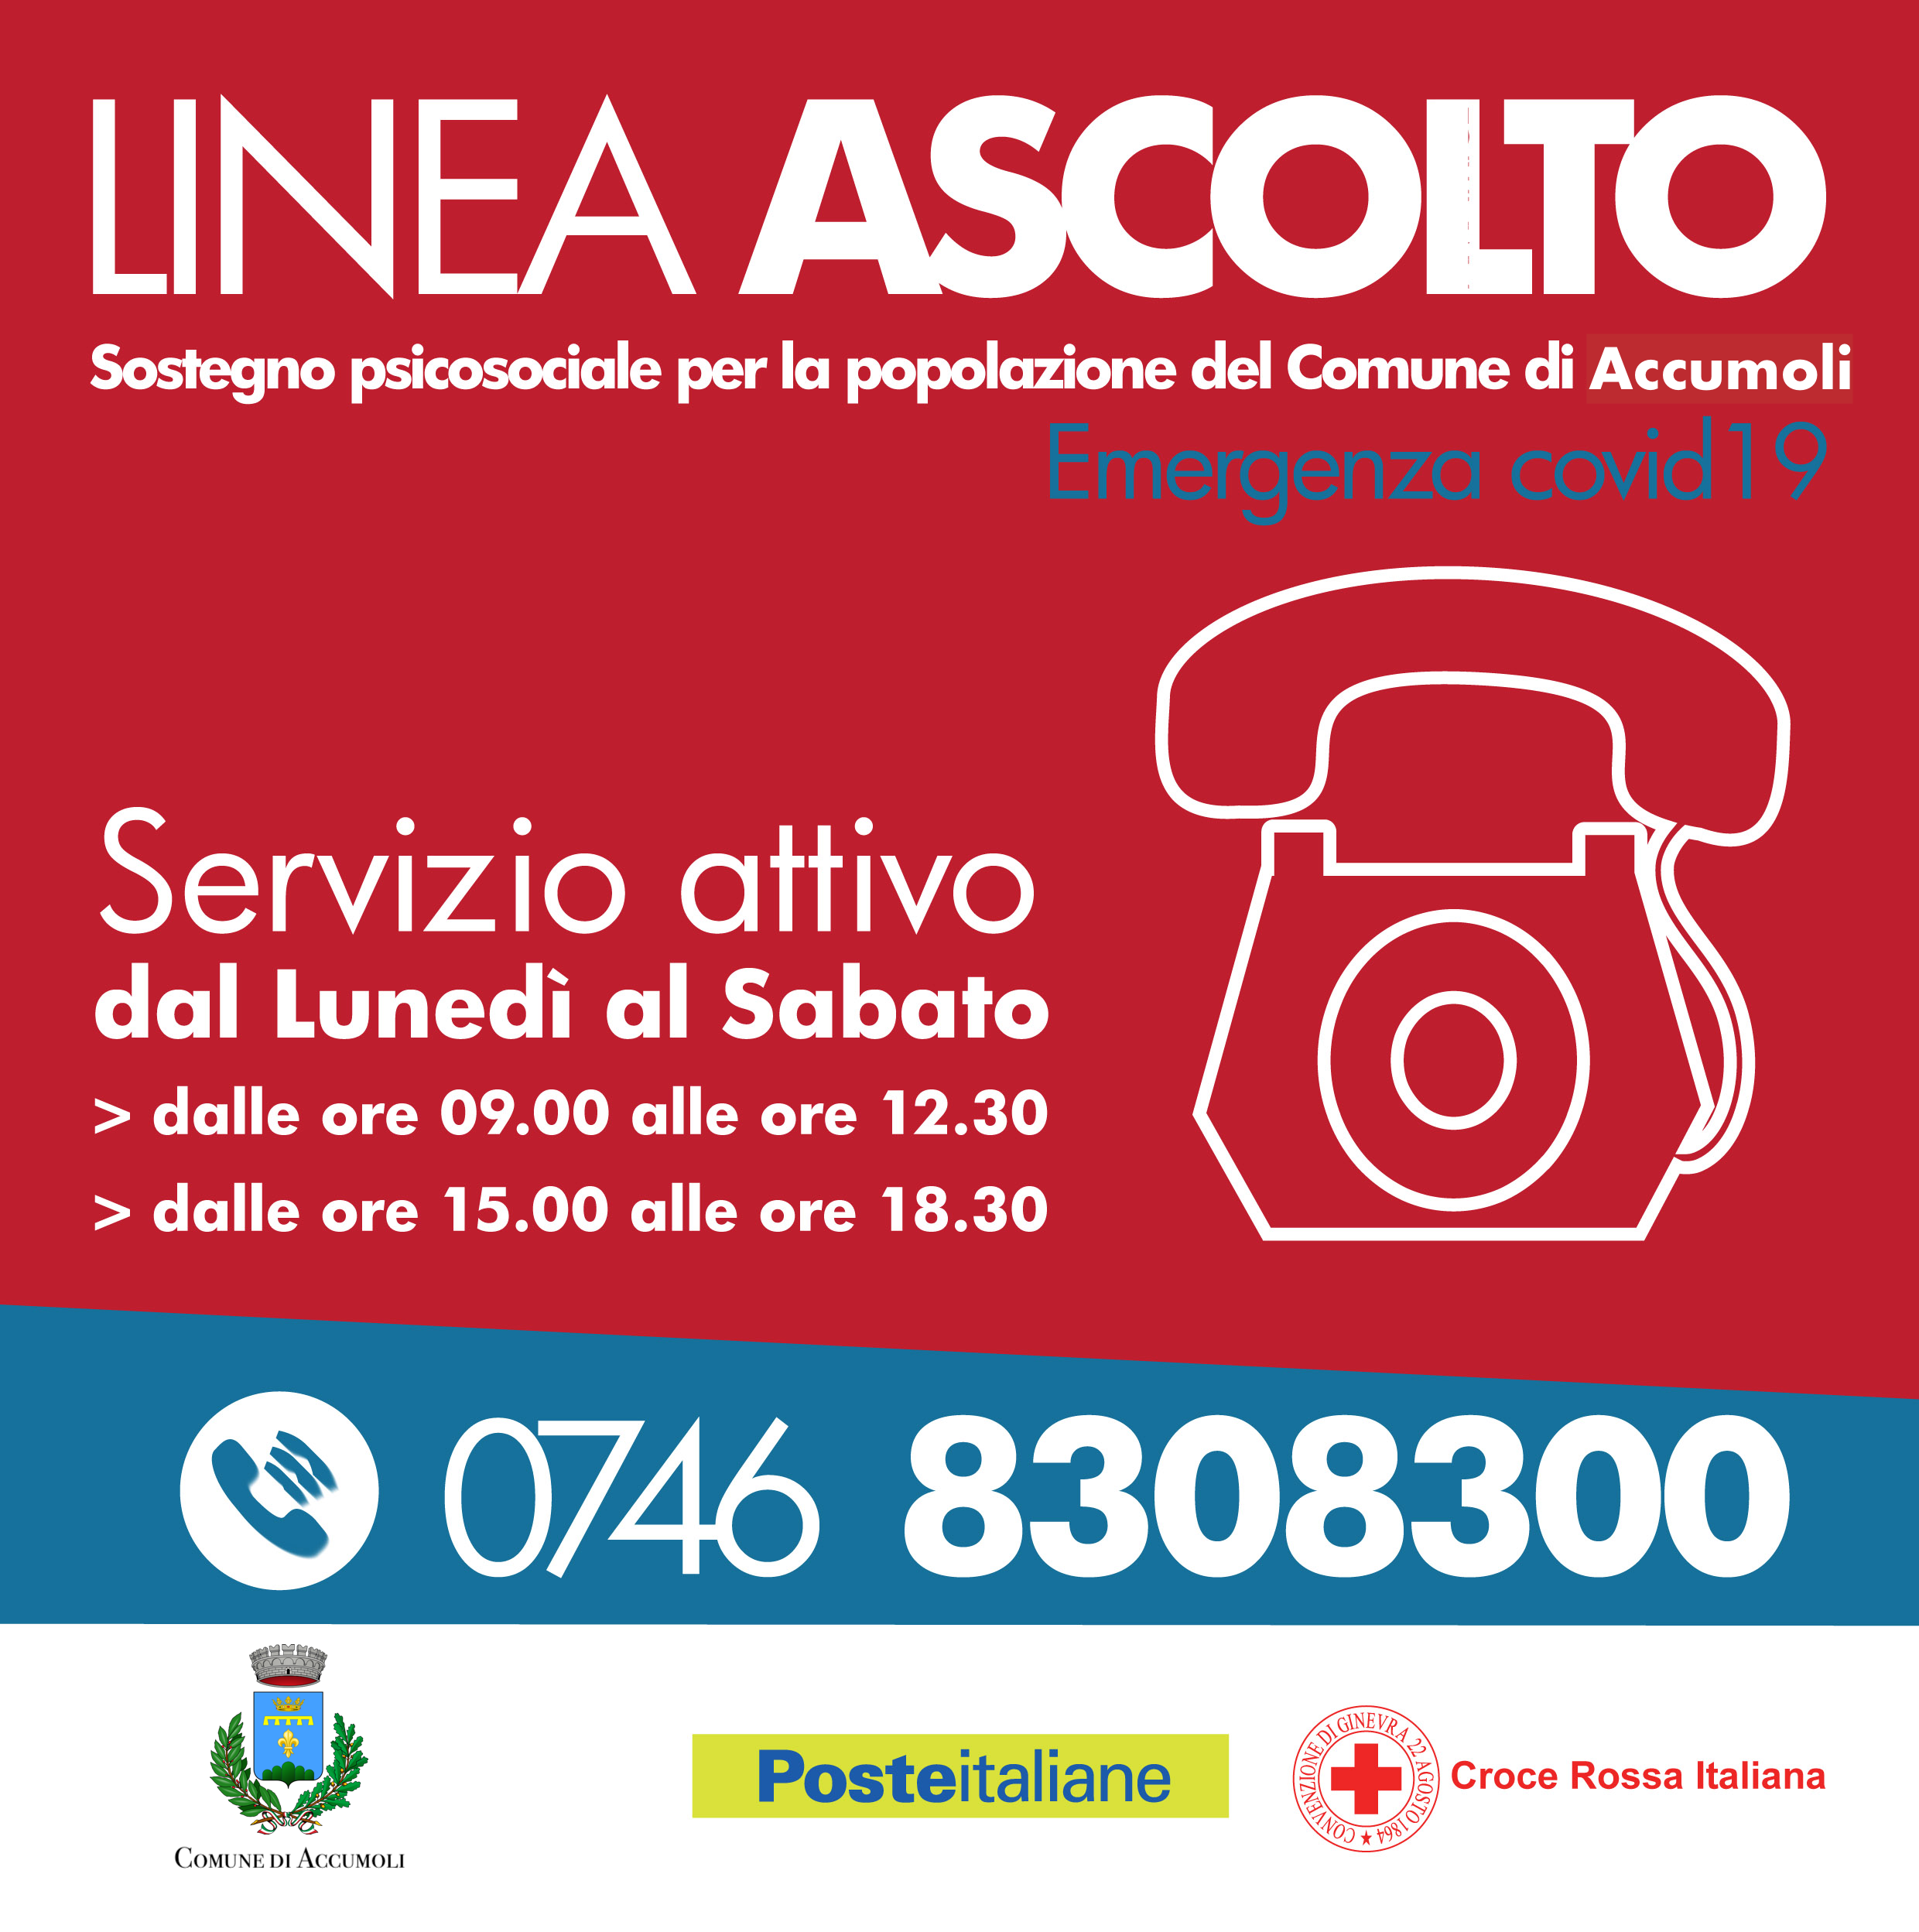 lineaascolto_